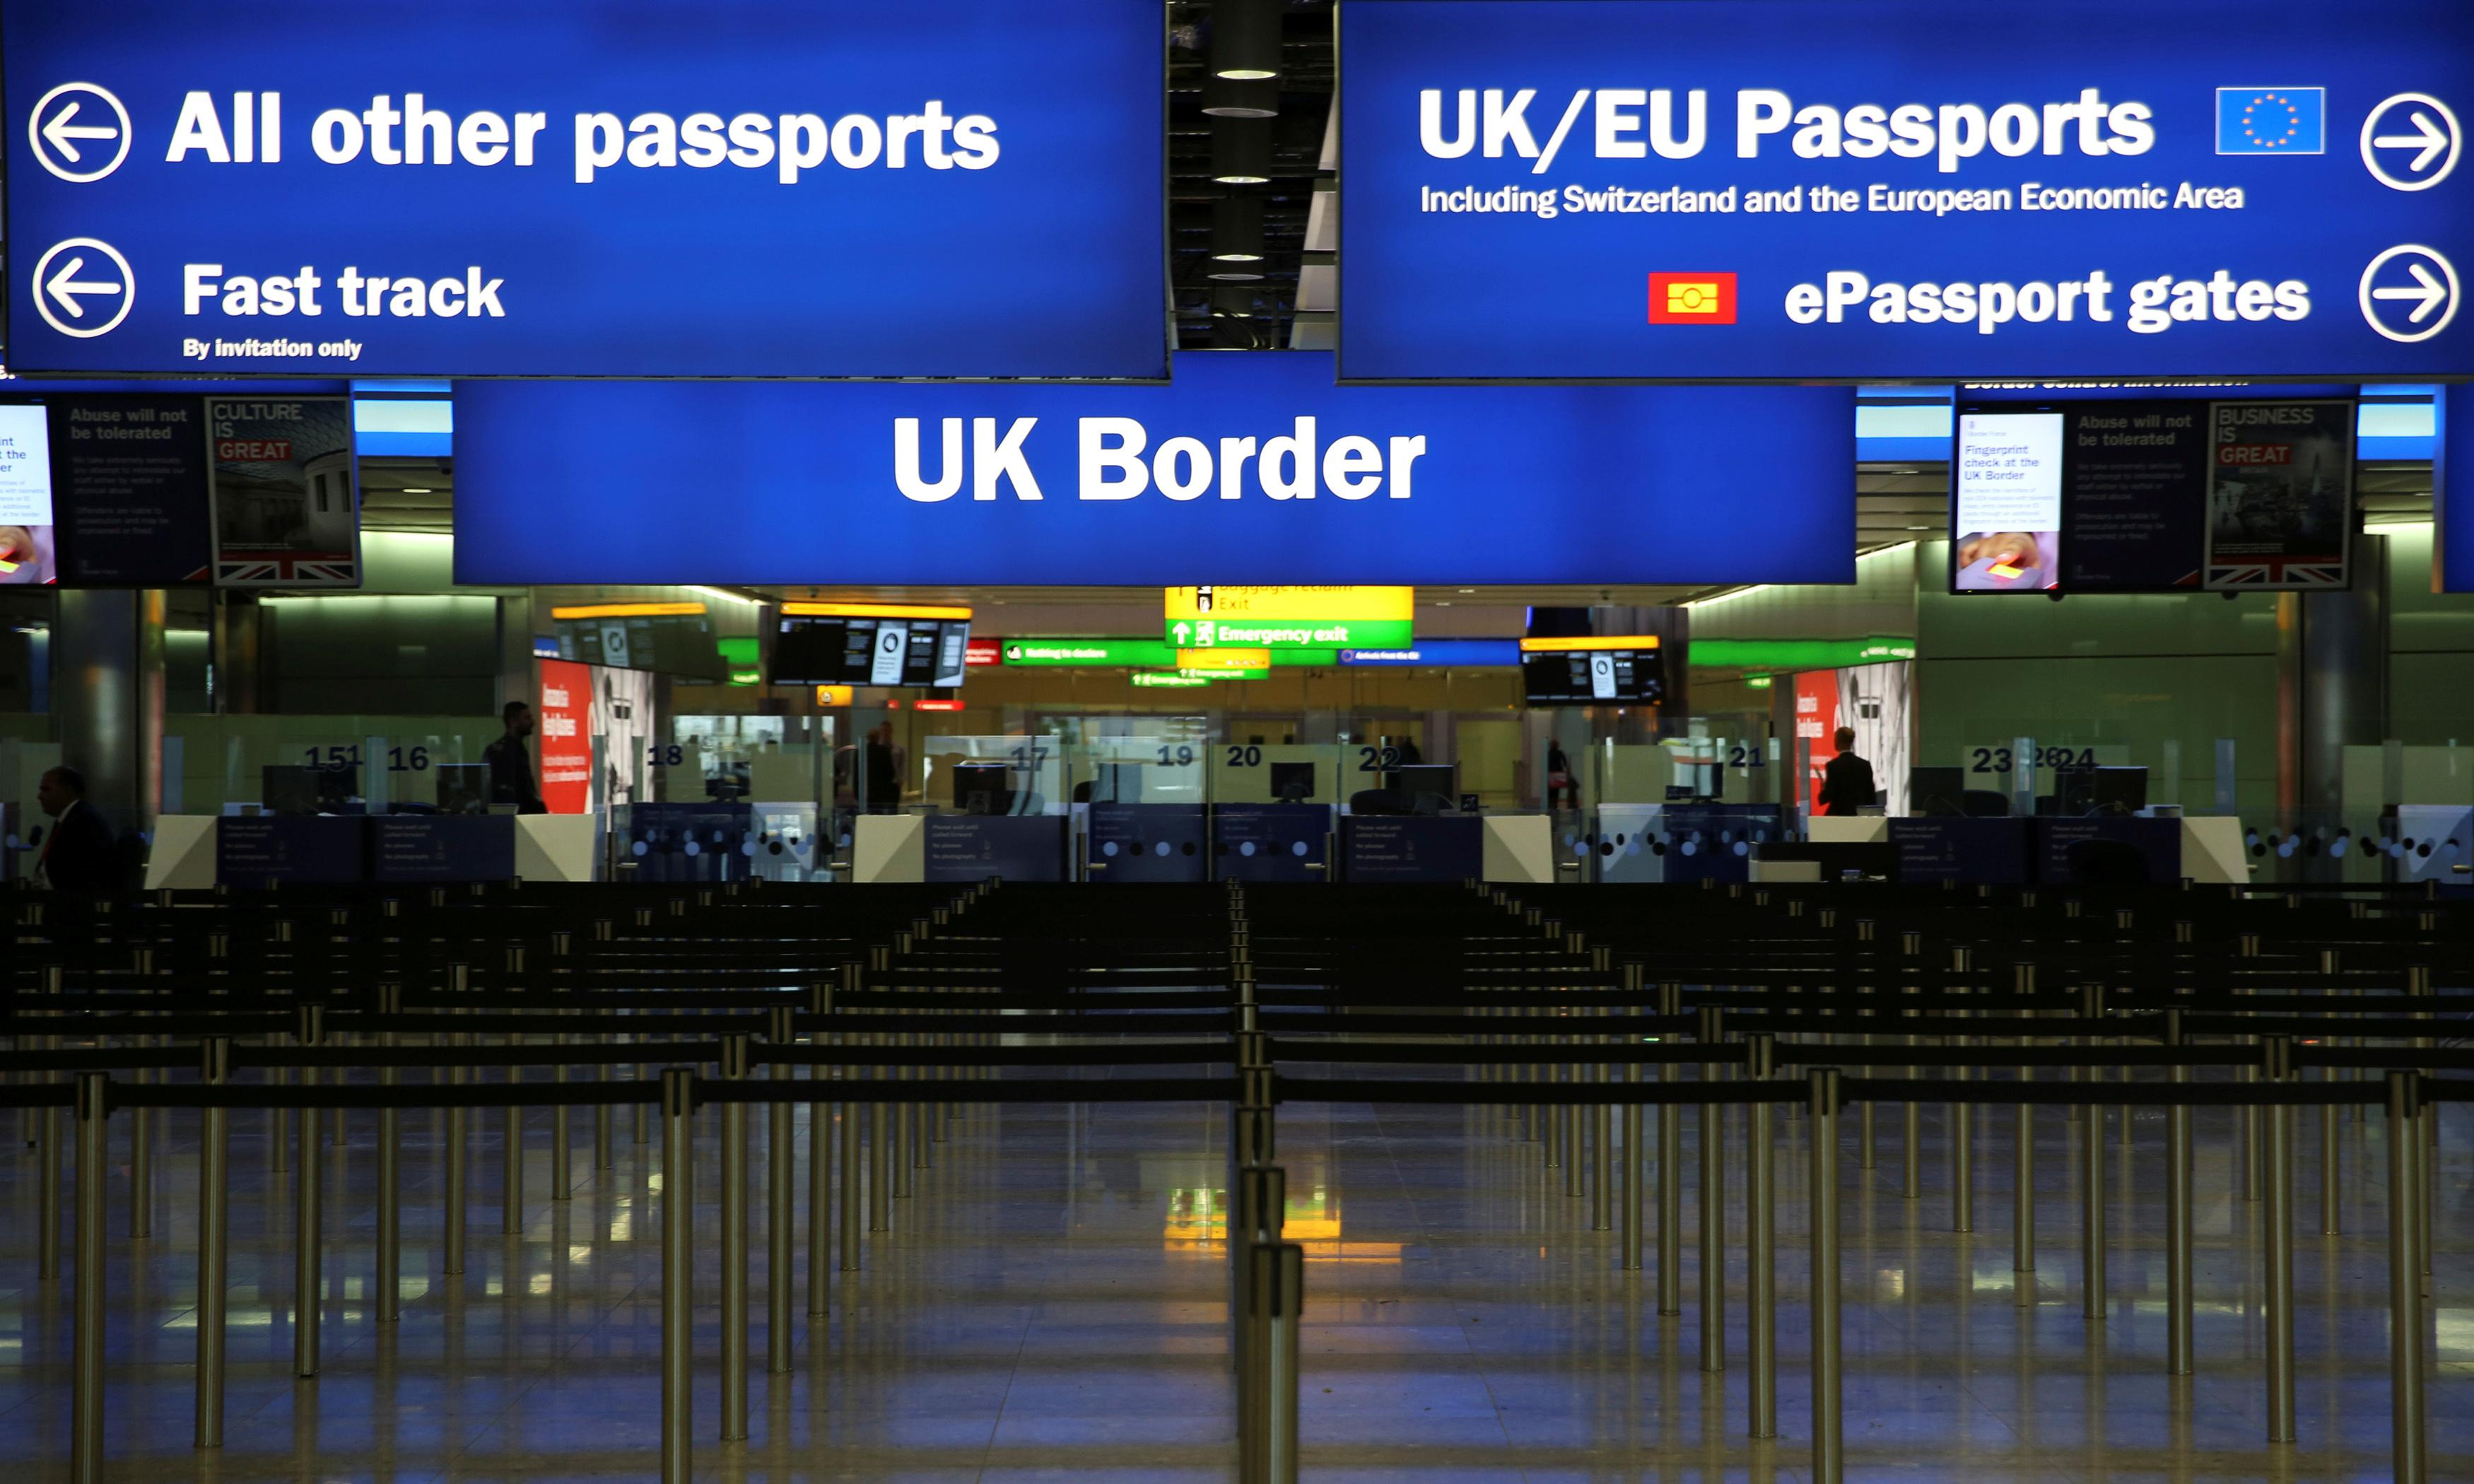 EU migration to UK at lowest level since 2013, disputed data shows